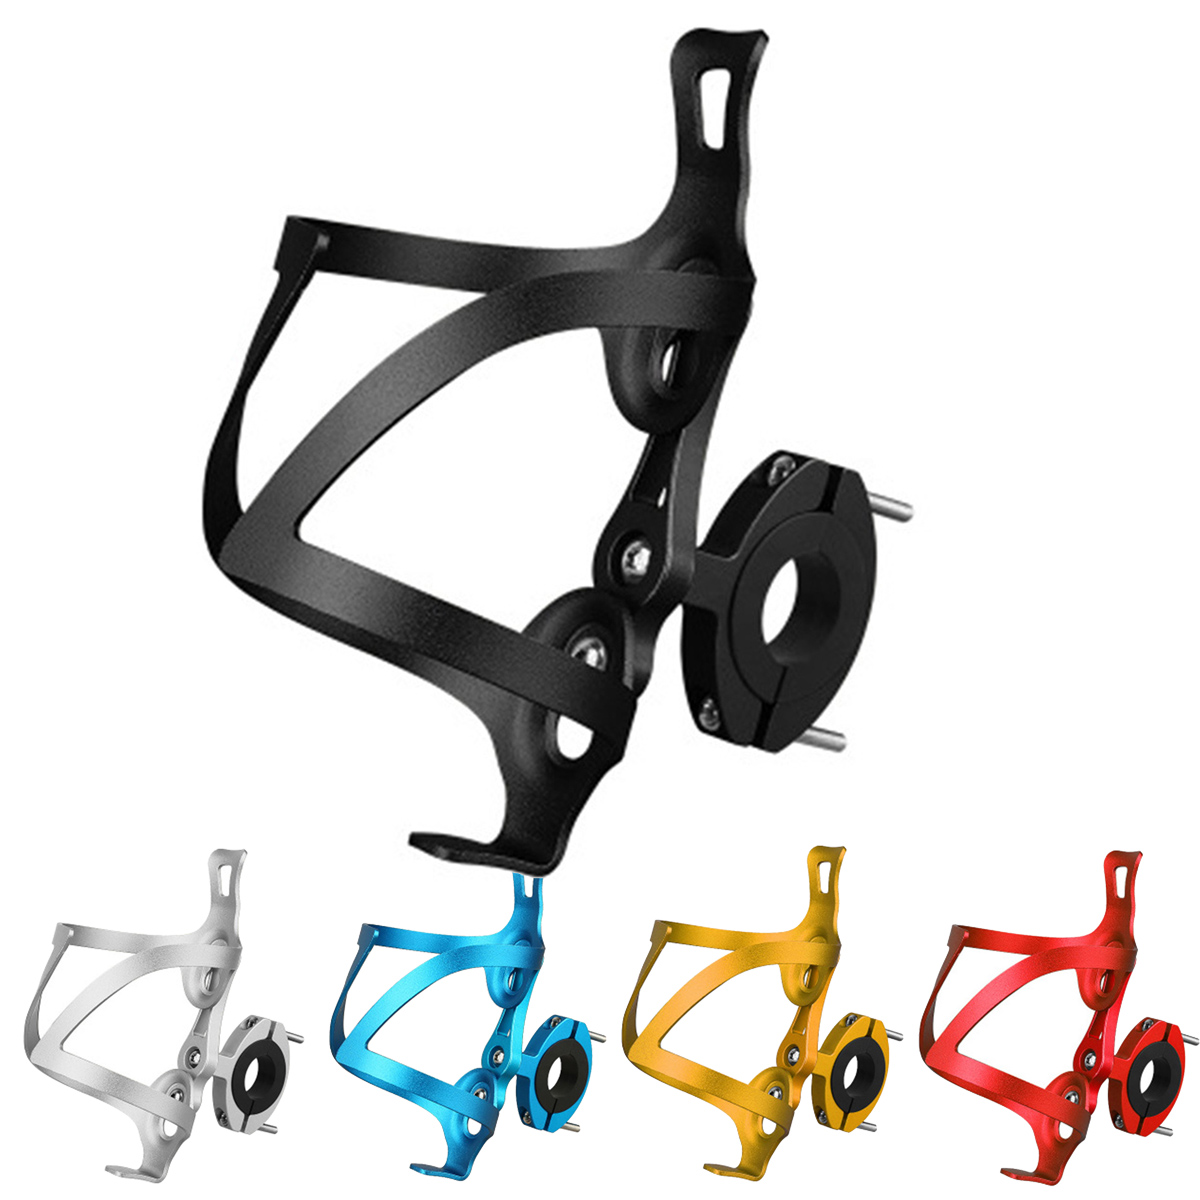 Aluminum Alloy Bicycle Cycling Drink Water Bottle Rack Holder Mount Cage Bracket